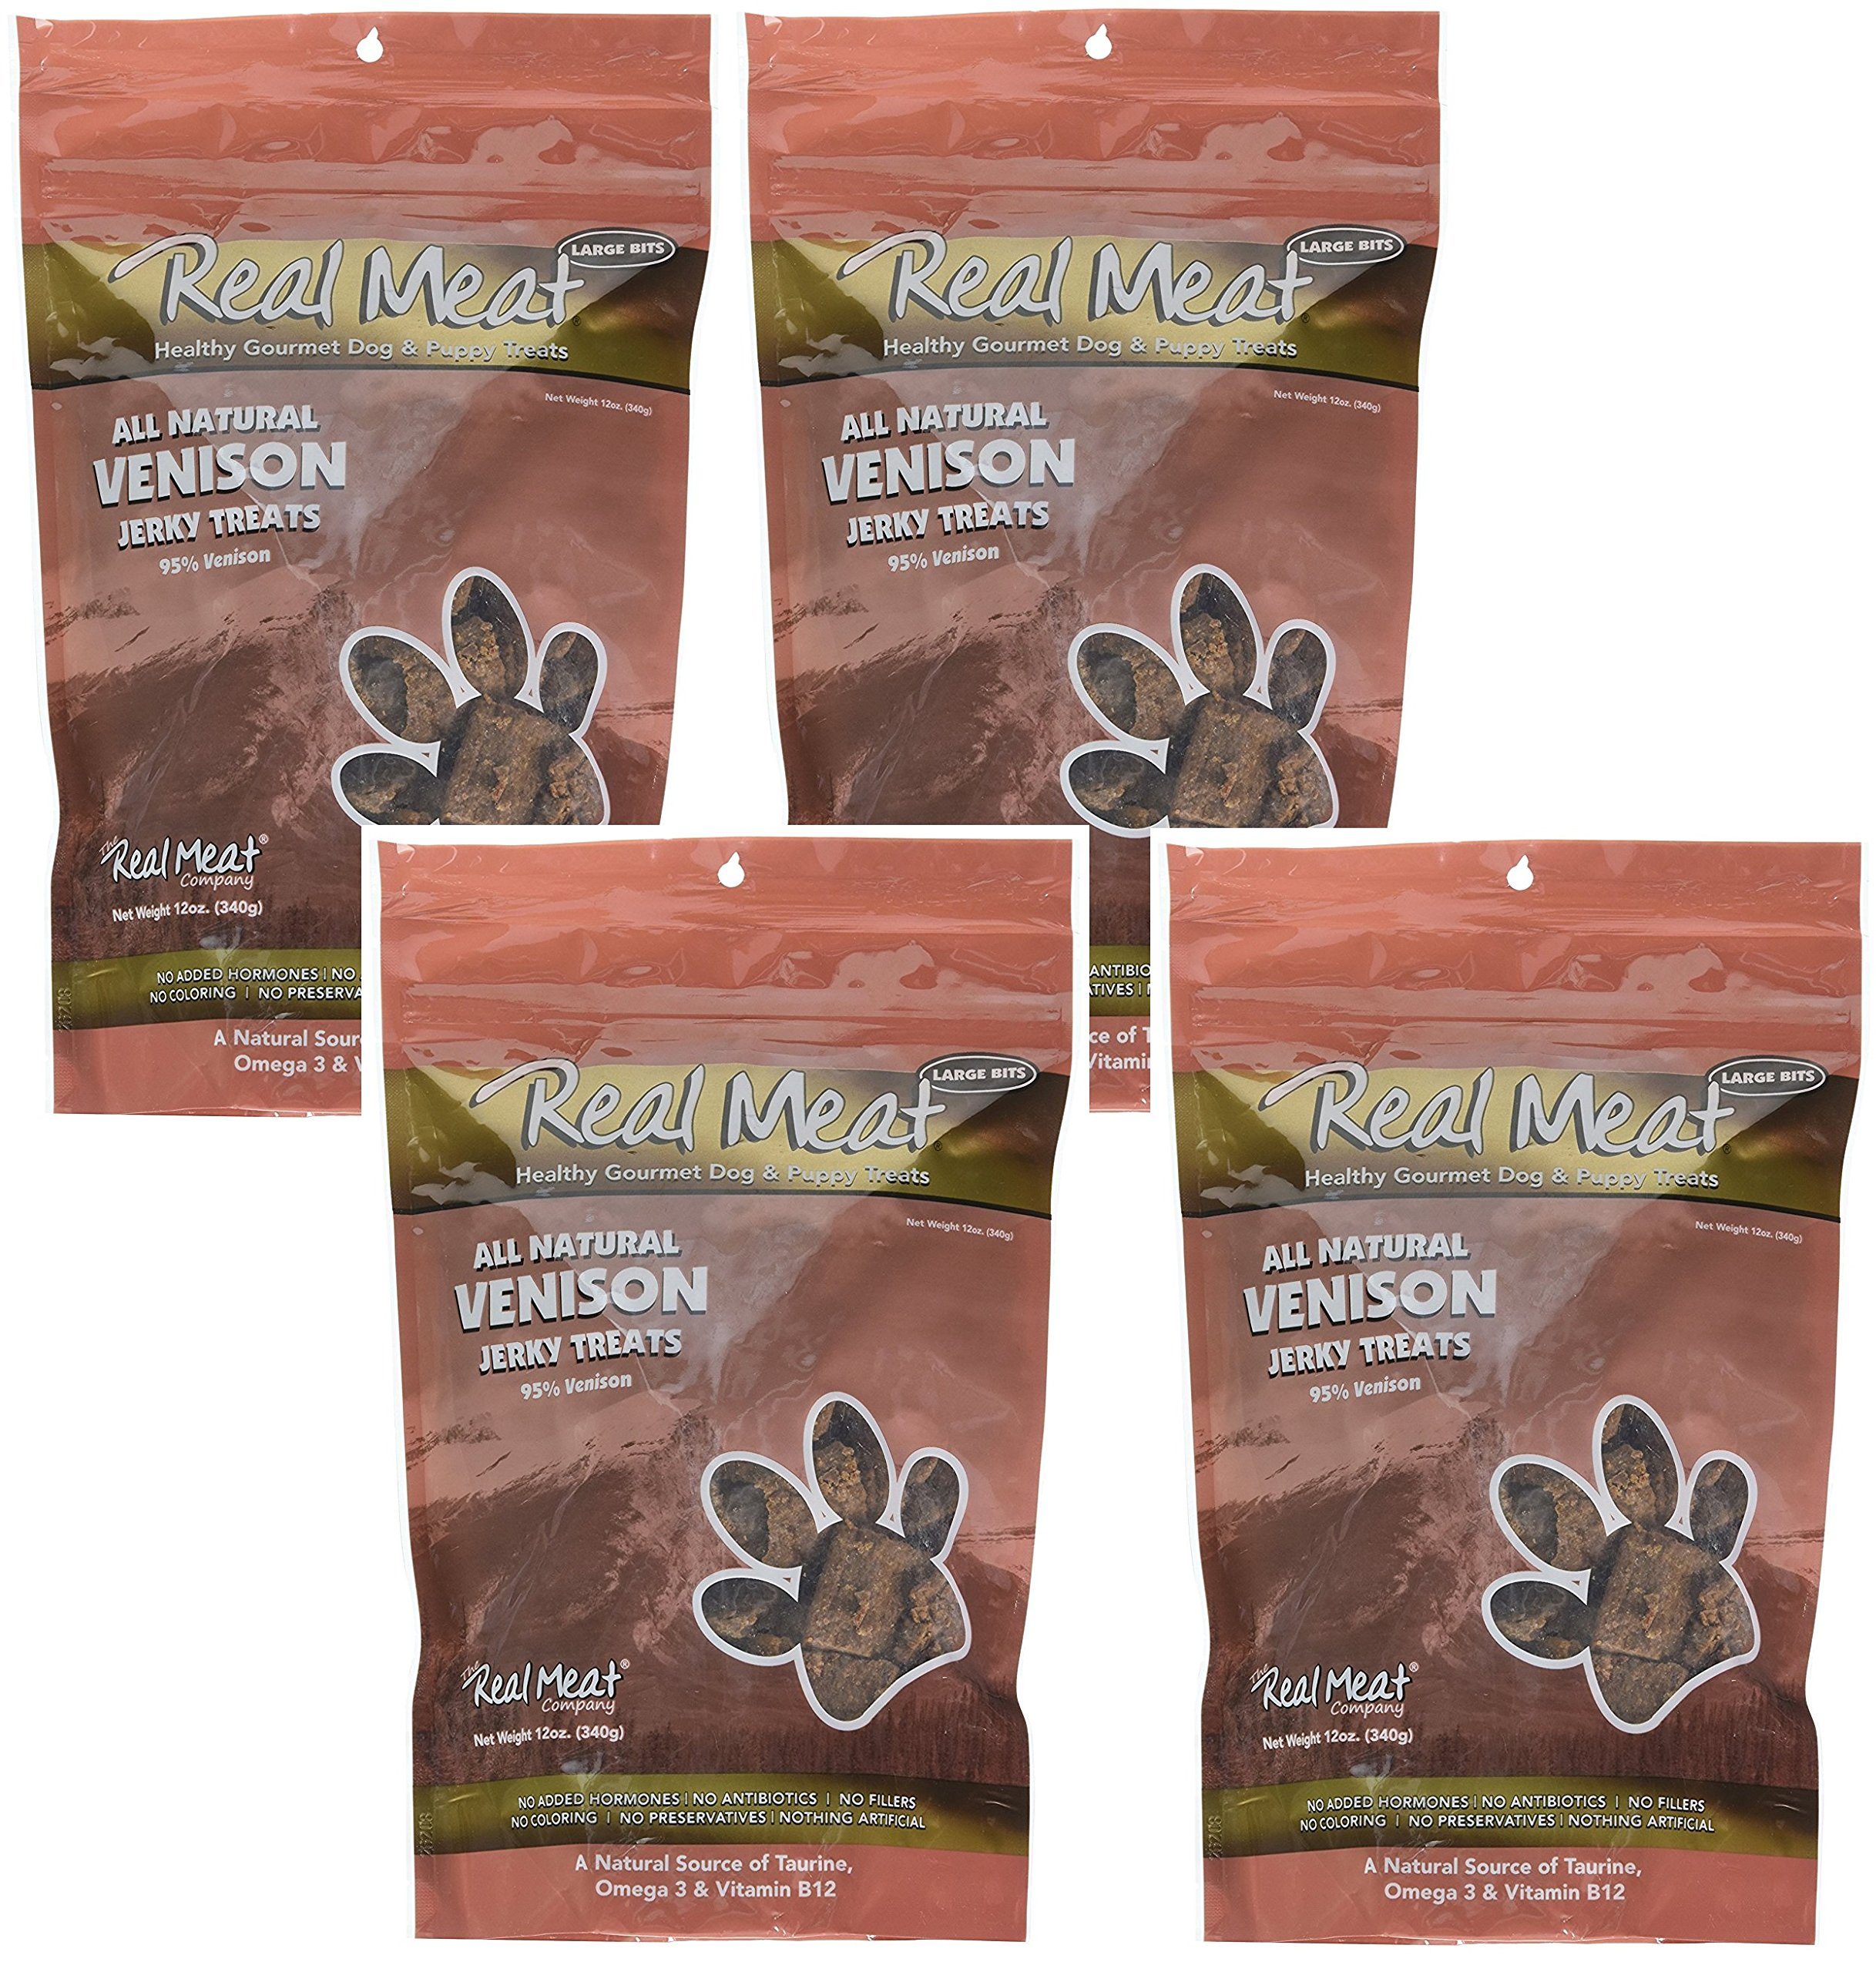 Real Meat Venison Jerky Dog Treats 12oz Pack of 4 (48oz total) by The Real Meat Company